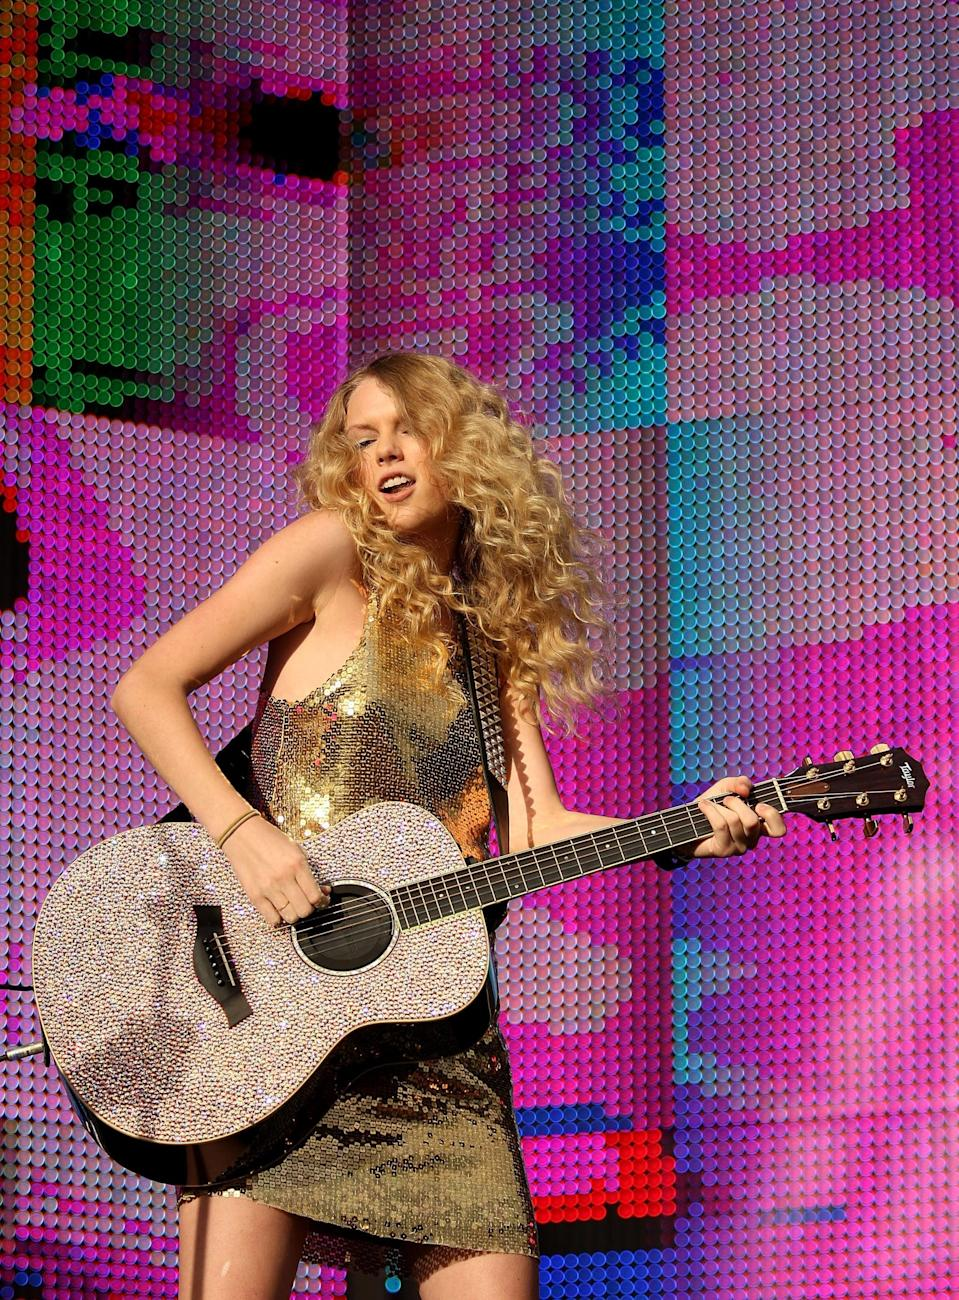 <p>The way the sun reflected off the sequins on this dress, along with Taylor's guitar, is really quite mesmerizing. She wore it to play at the Sound Relief concert in Sydney, Australia in March 2009.</p>